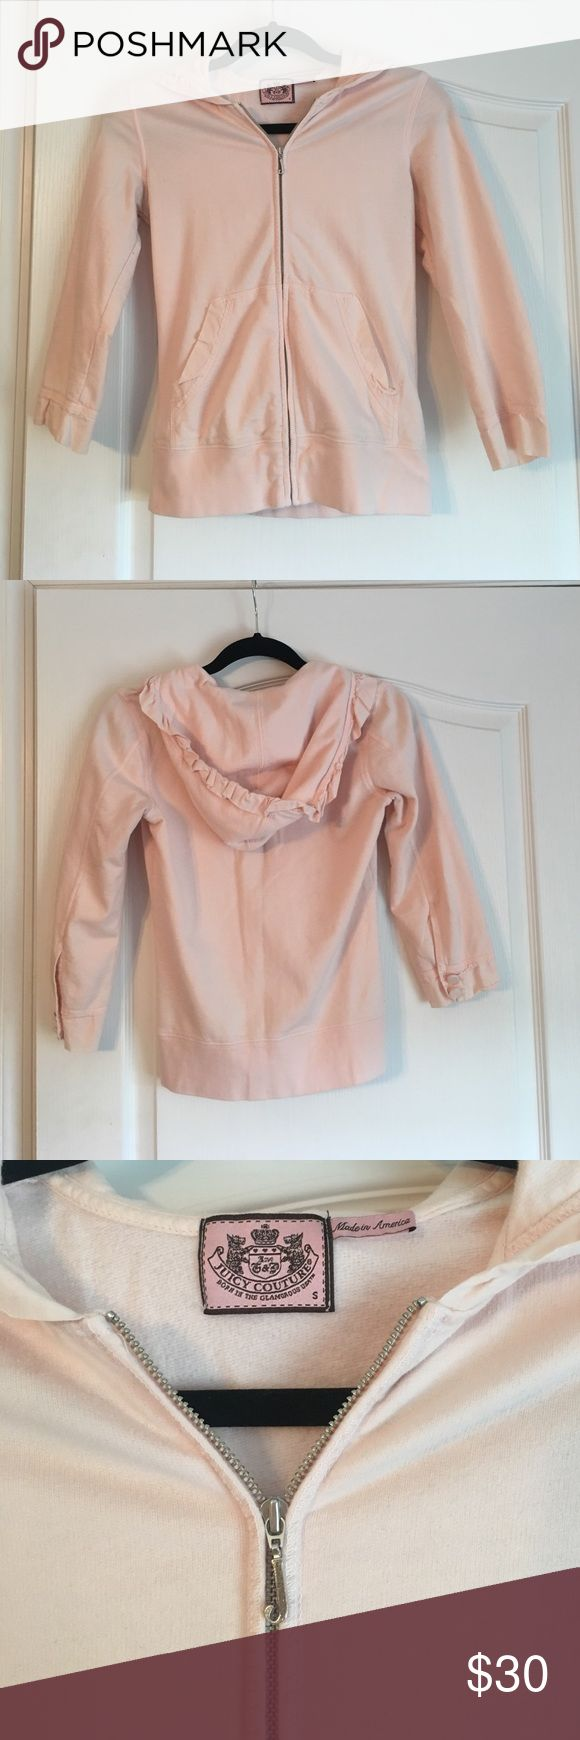 Juicy Couture light pink sweatshirt Juicy Couture light pink 3/4 sleeved sweatshirt. Ruffled hood and button detail on sleeves Juicy Couture Tops Sweatshirts & Hoodies